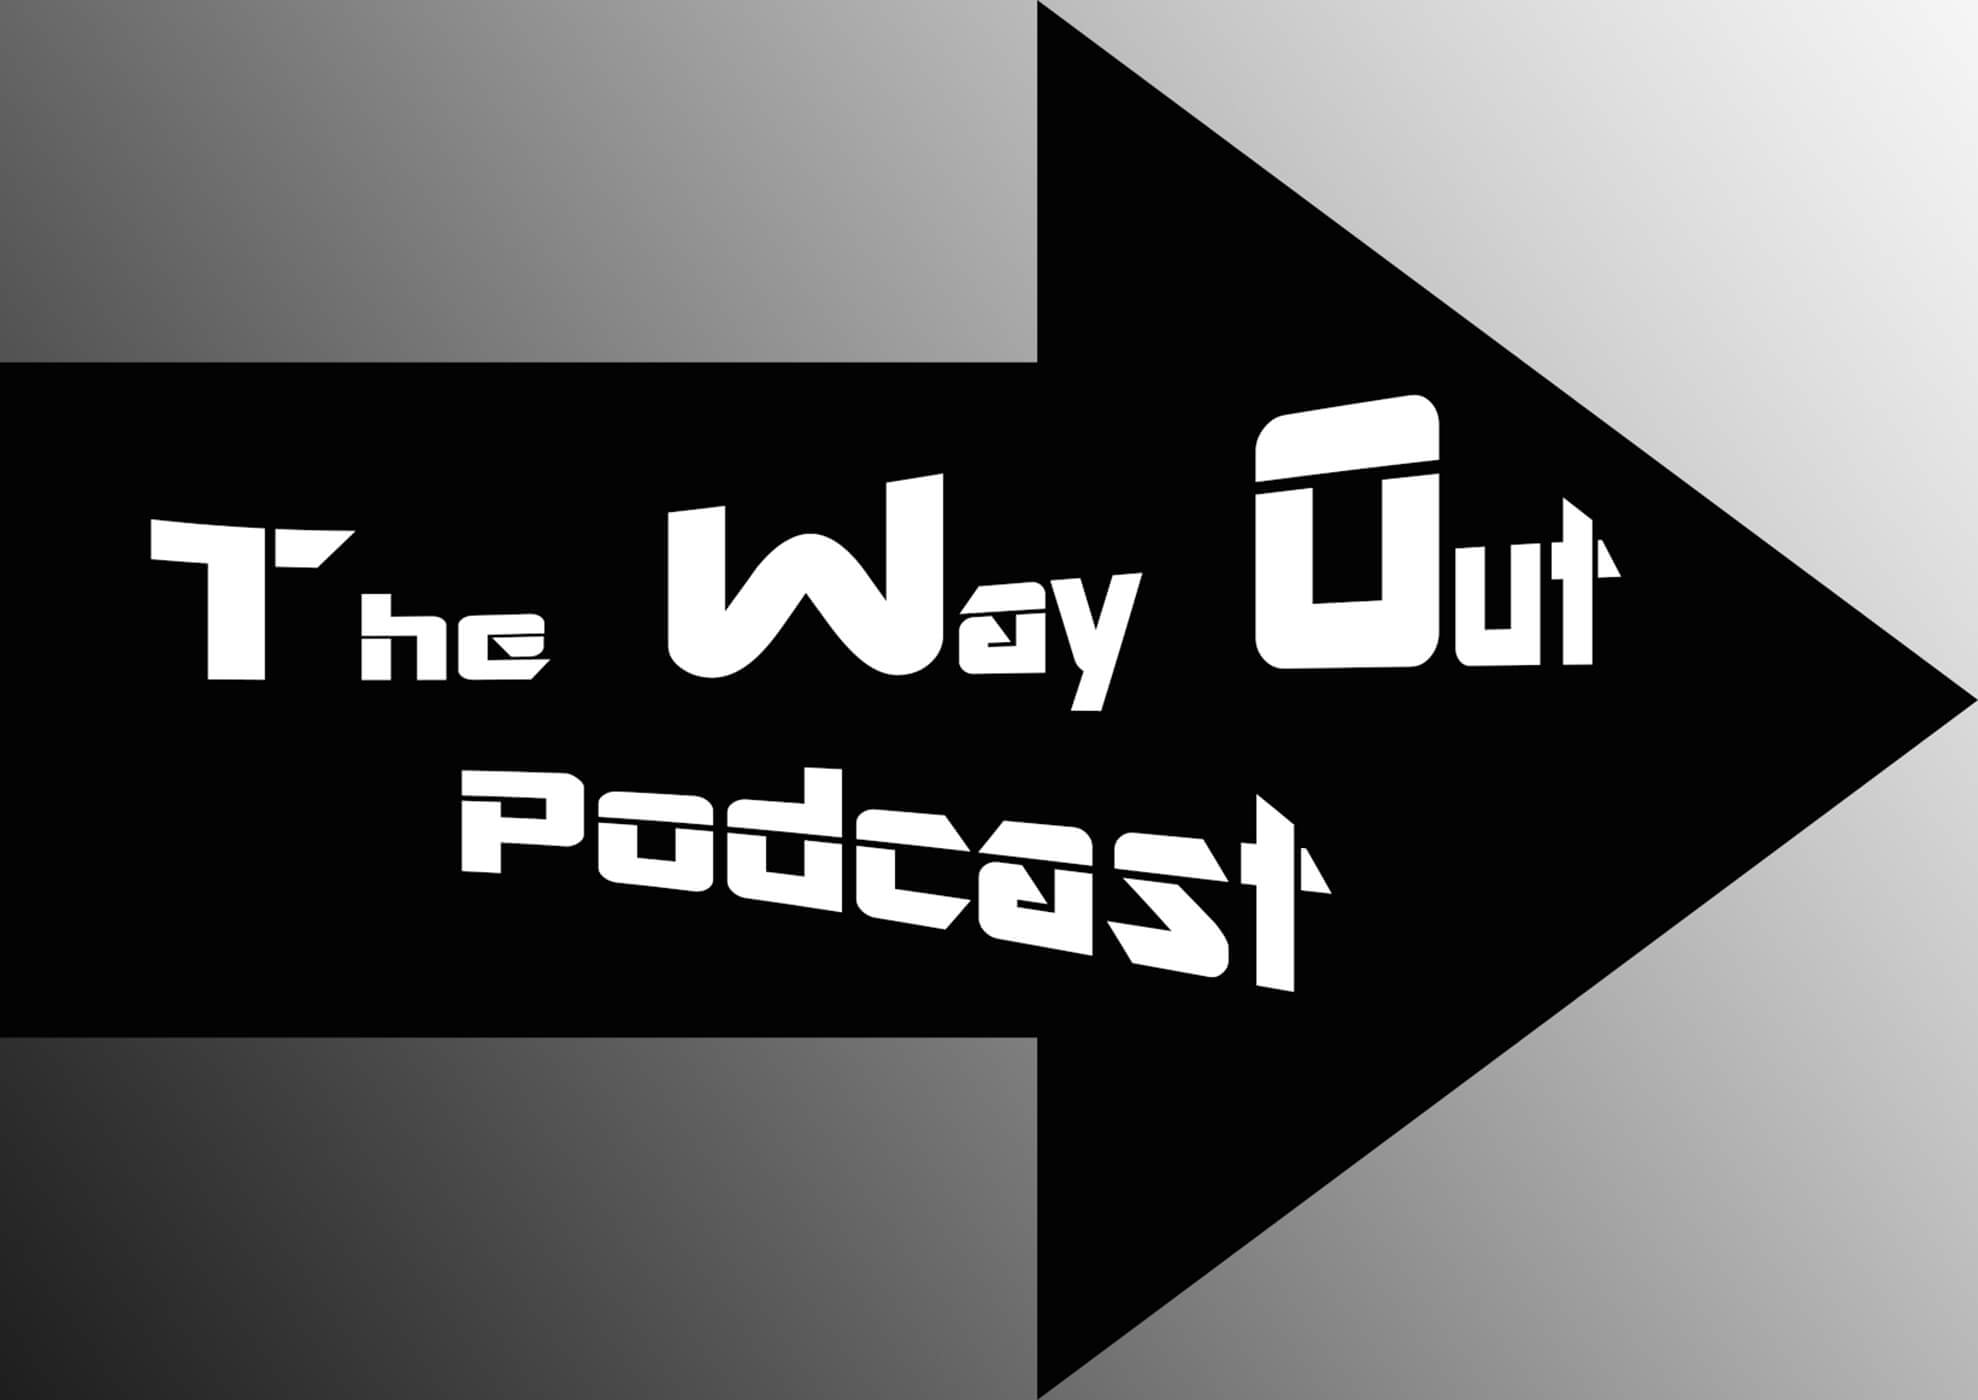 Chris Swan on The Way Out Podcast